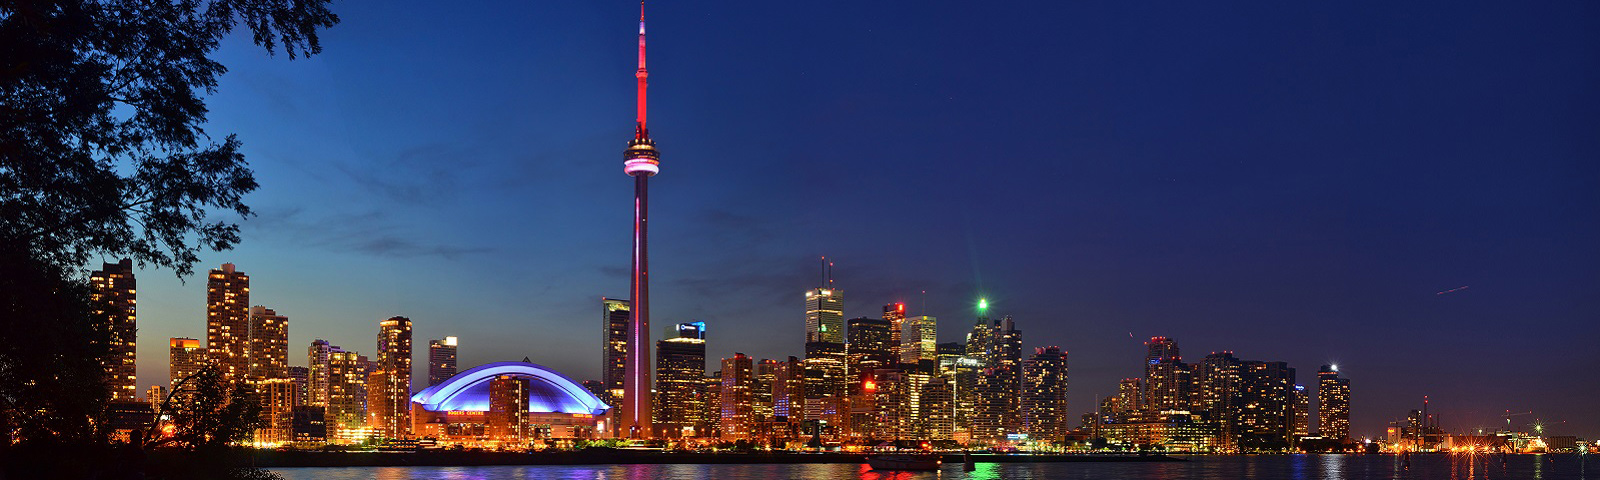 Toronto, the site of 2016 Worldwide Partner Conference